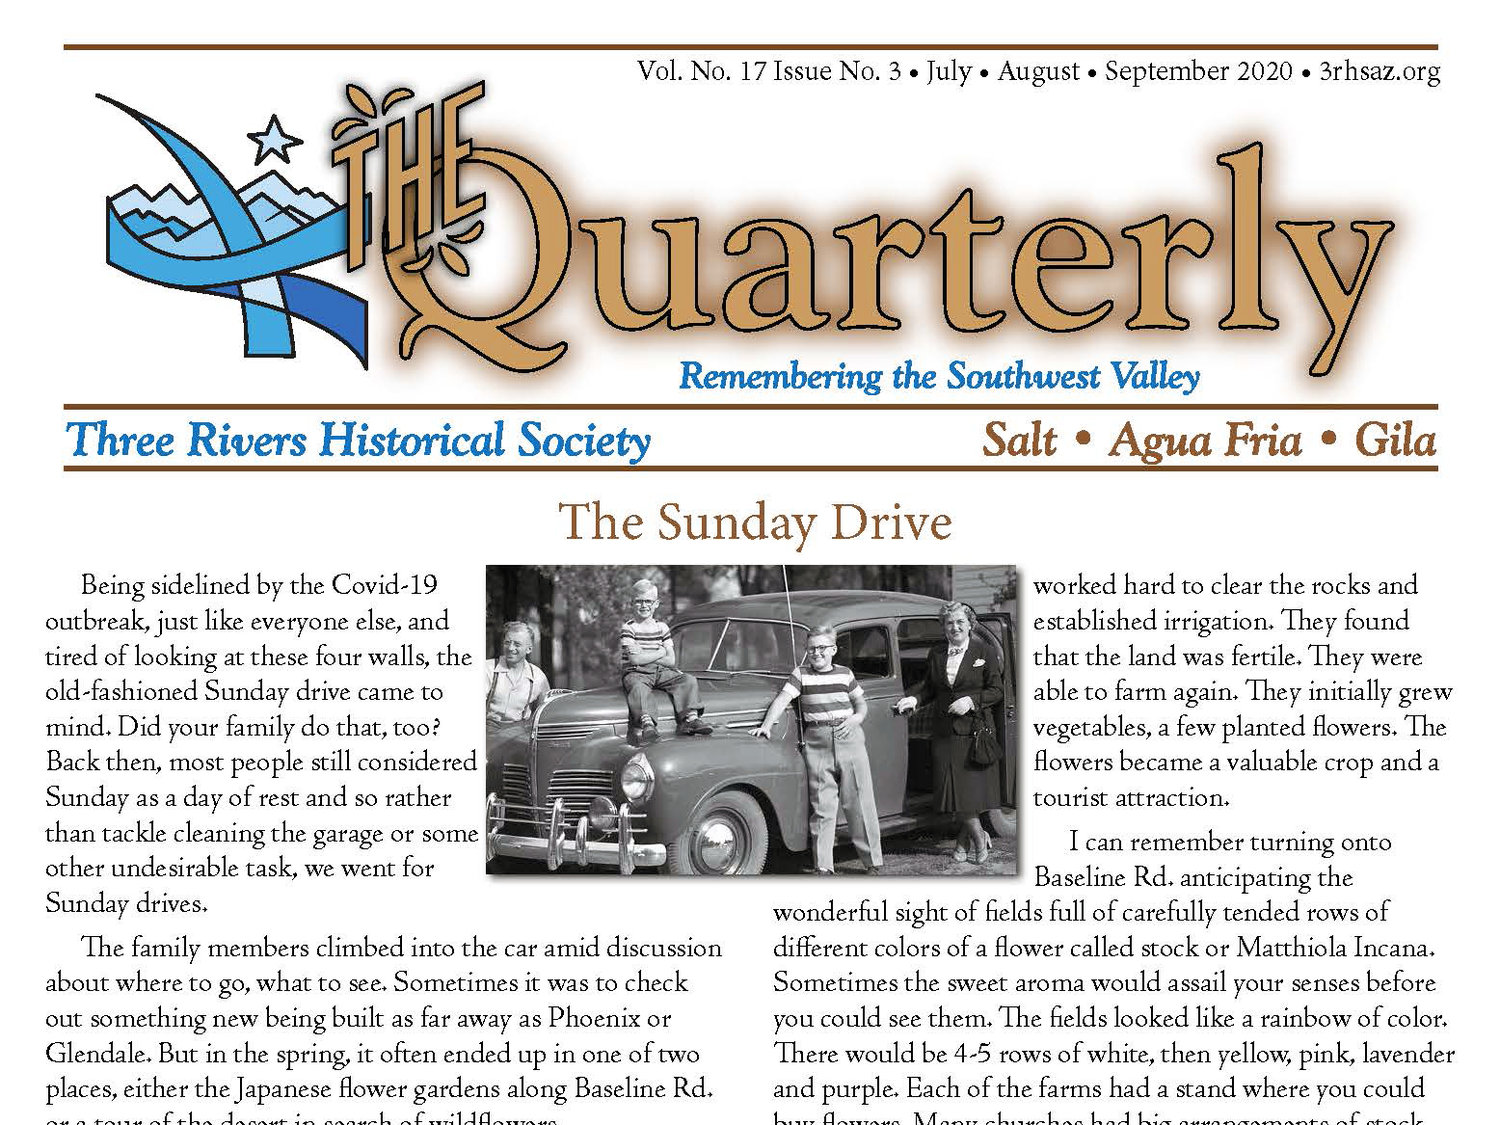 The Quarterly is a publication of the Three Rivers Historical Society.